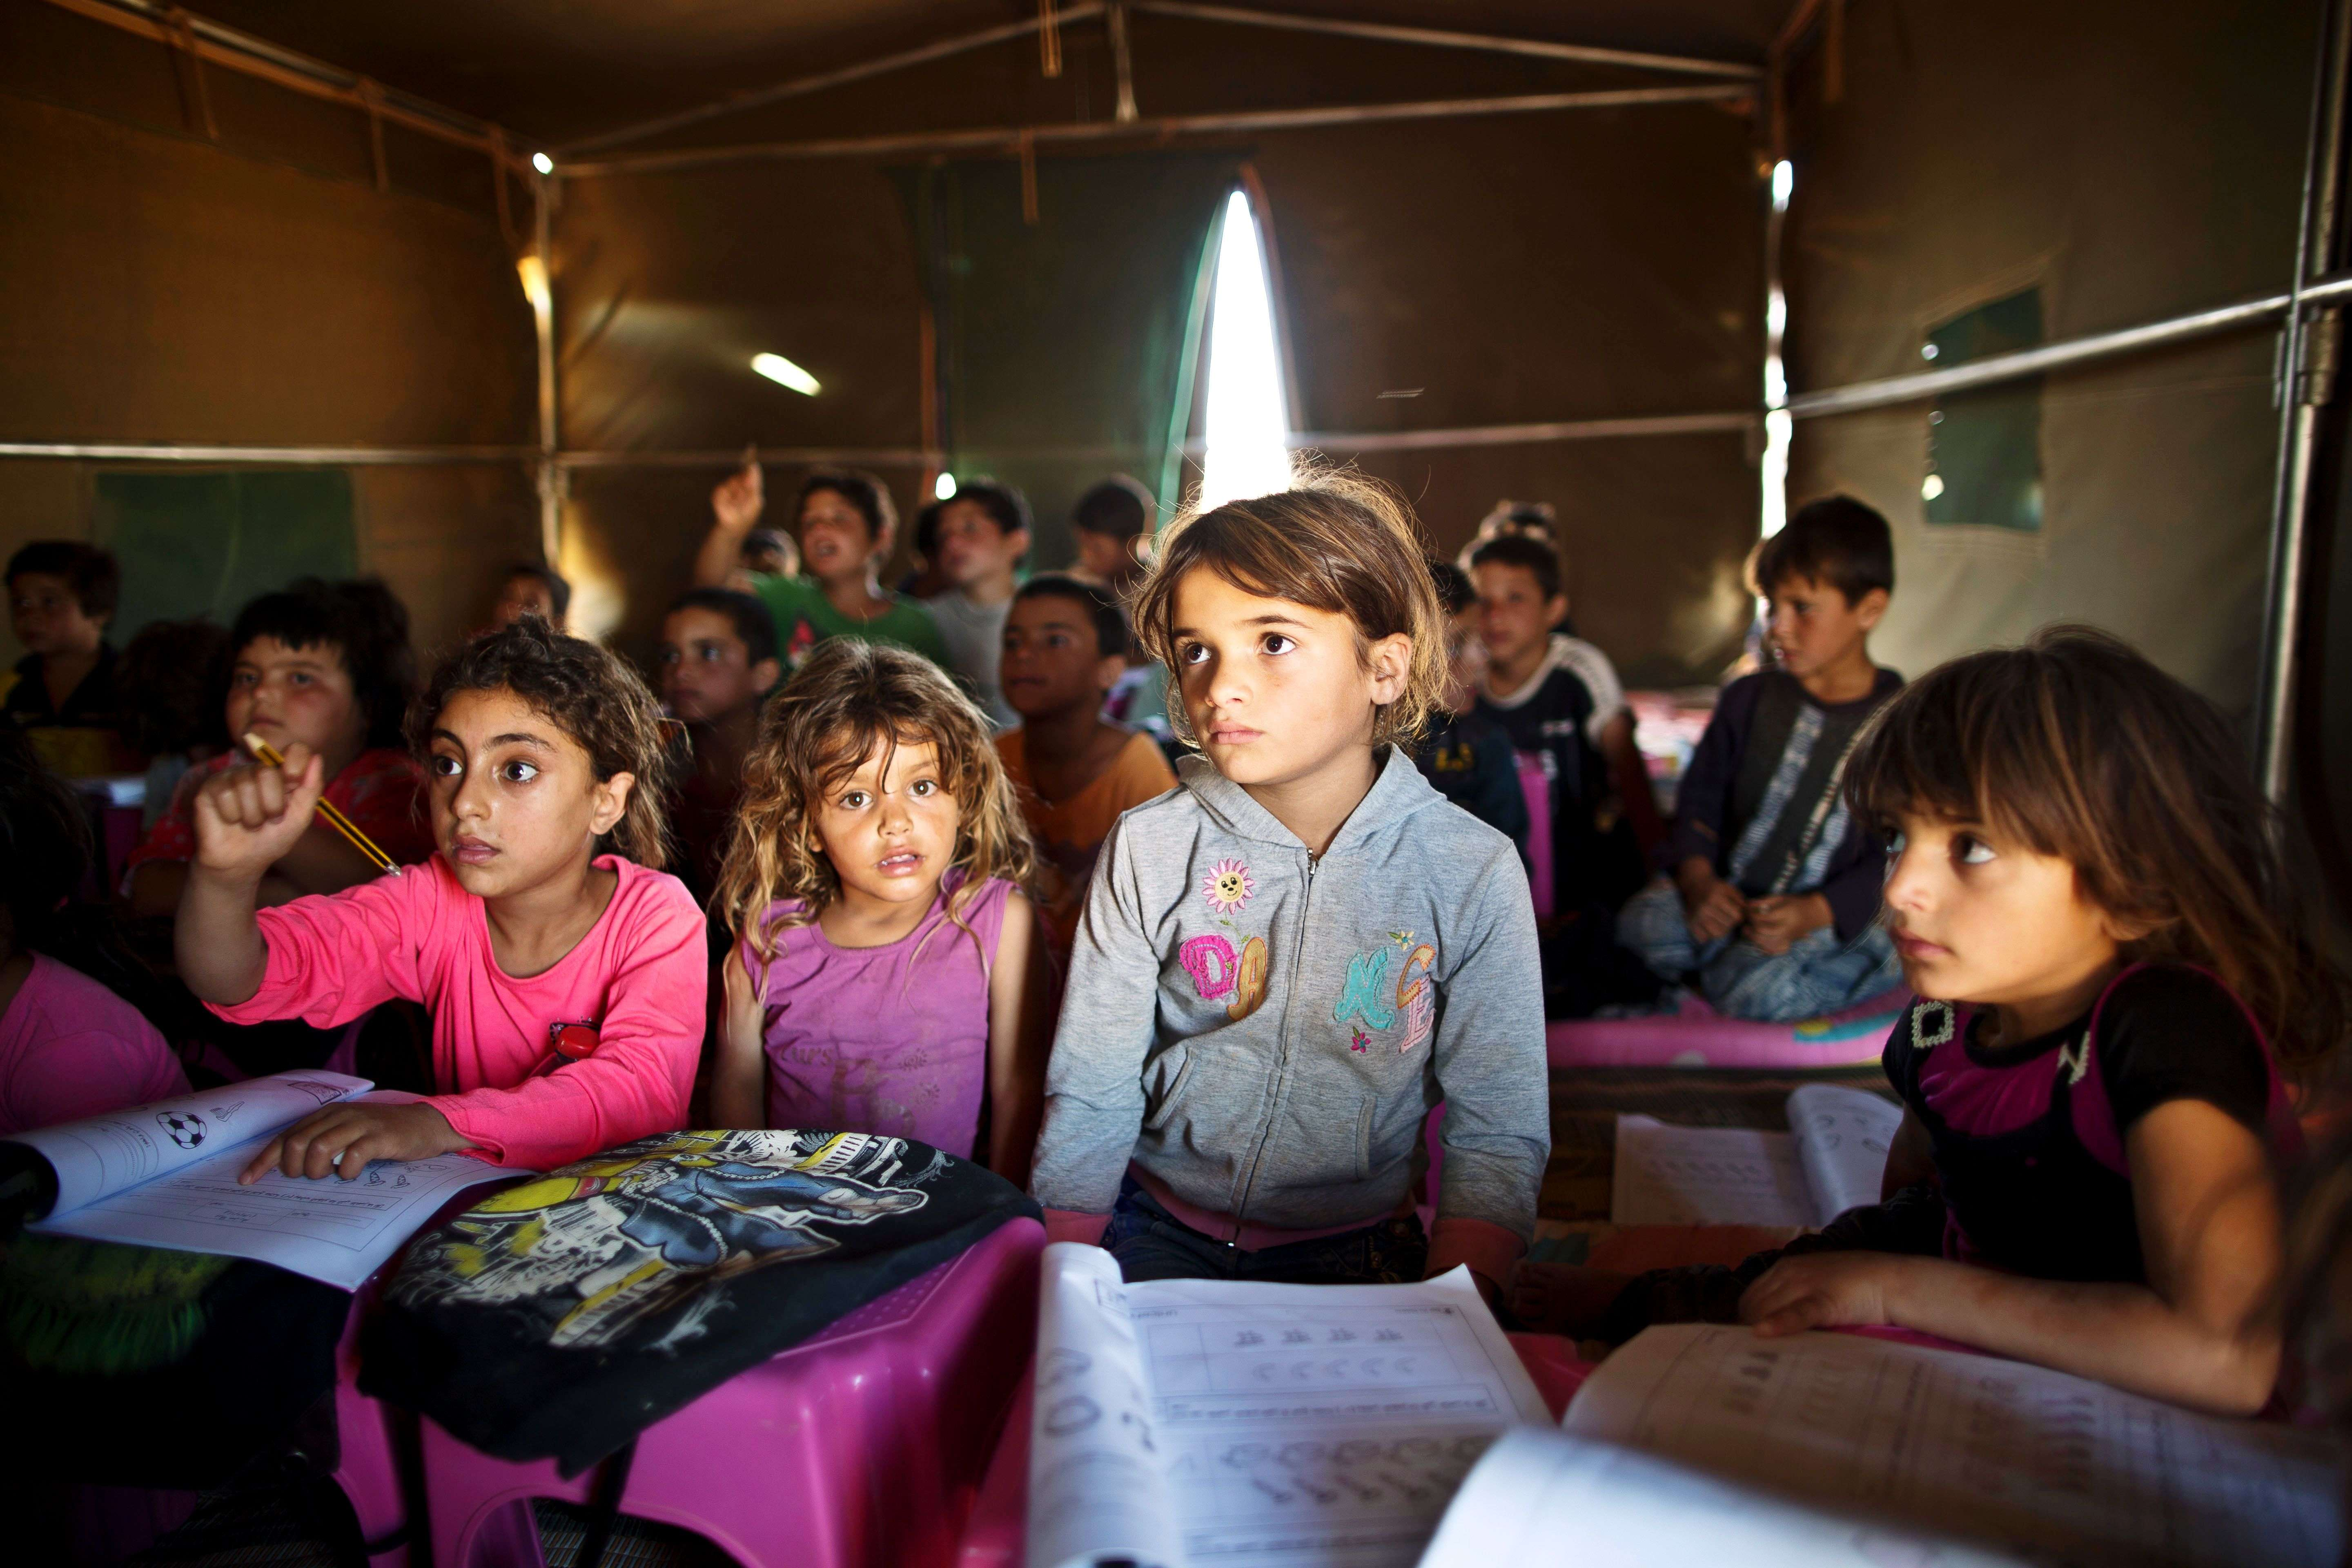 Syrian refugee children attend a class at a makeshift school set up in a tent at an informal tented settlement near the Syrian border on the outskirts of Mafraq, Jordan. (AP Photo/Muhammed Muheisen, File)